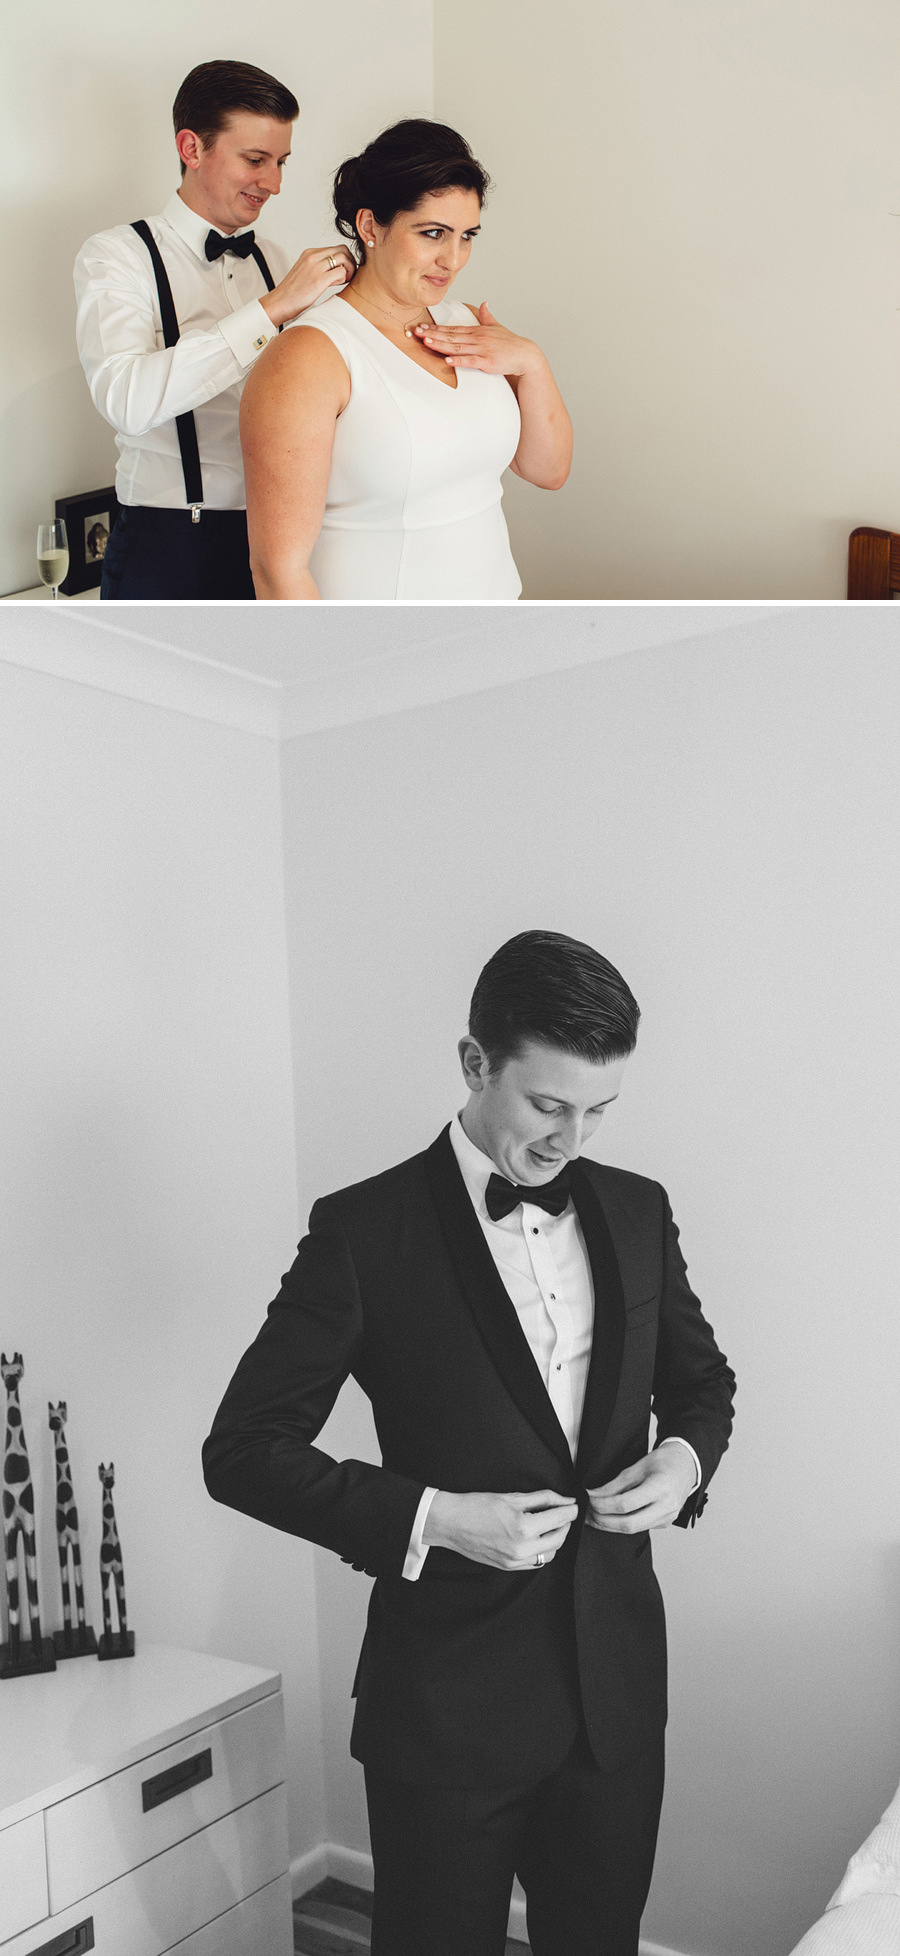 Timeless Wedding Photography: Groom getting ready